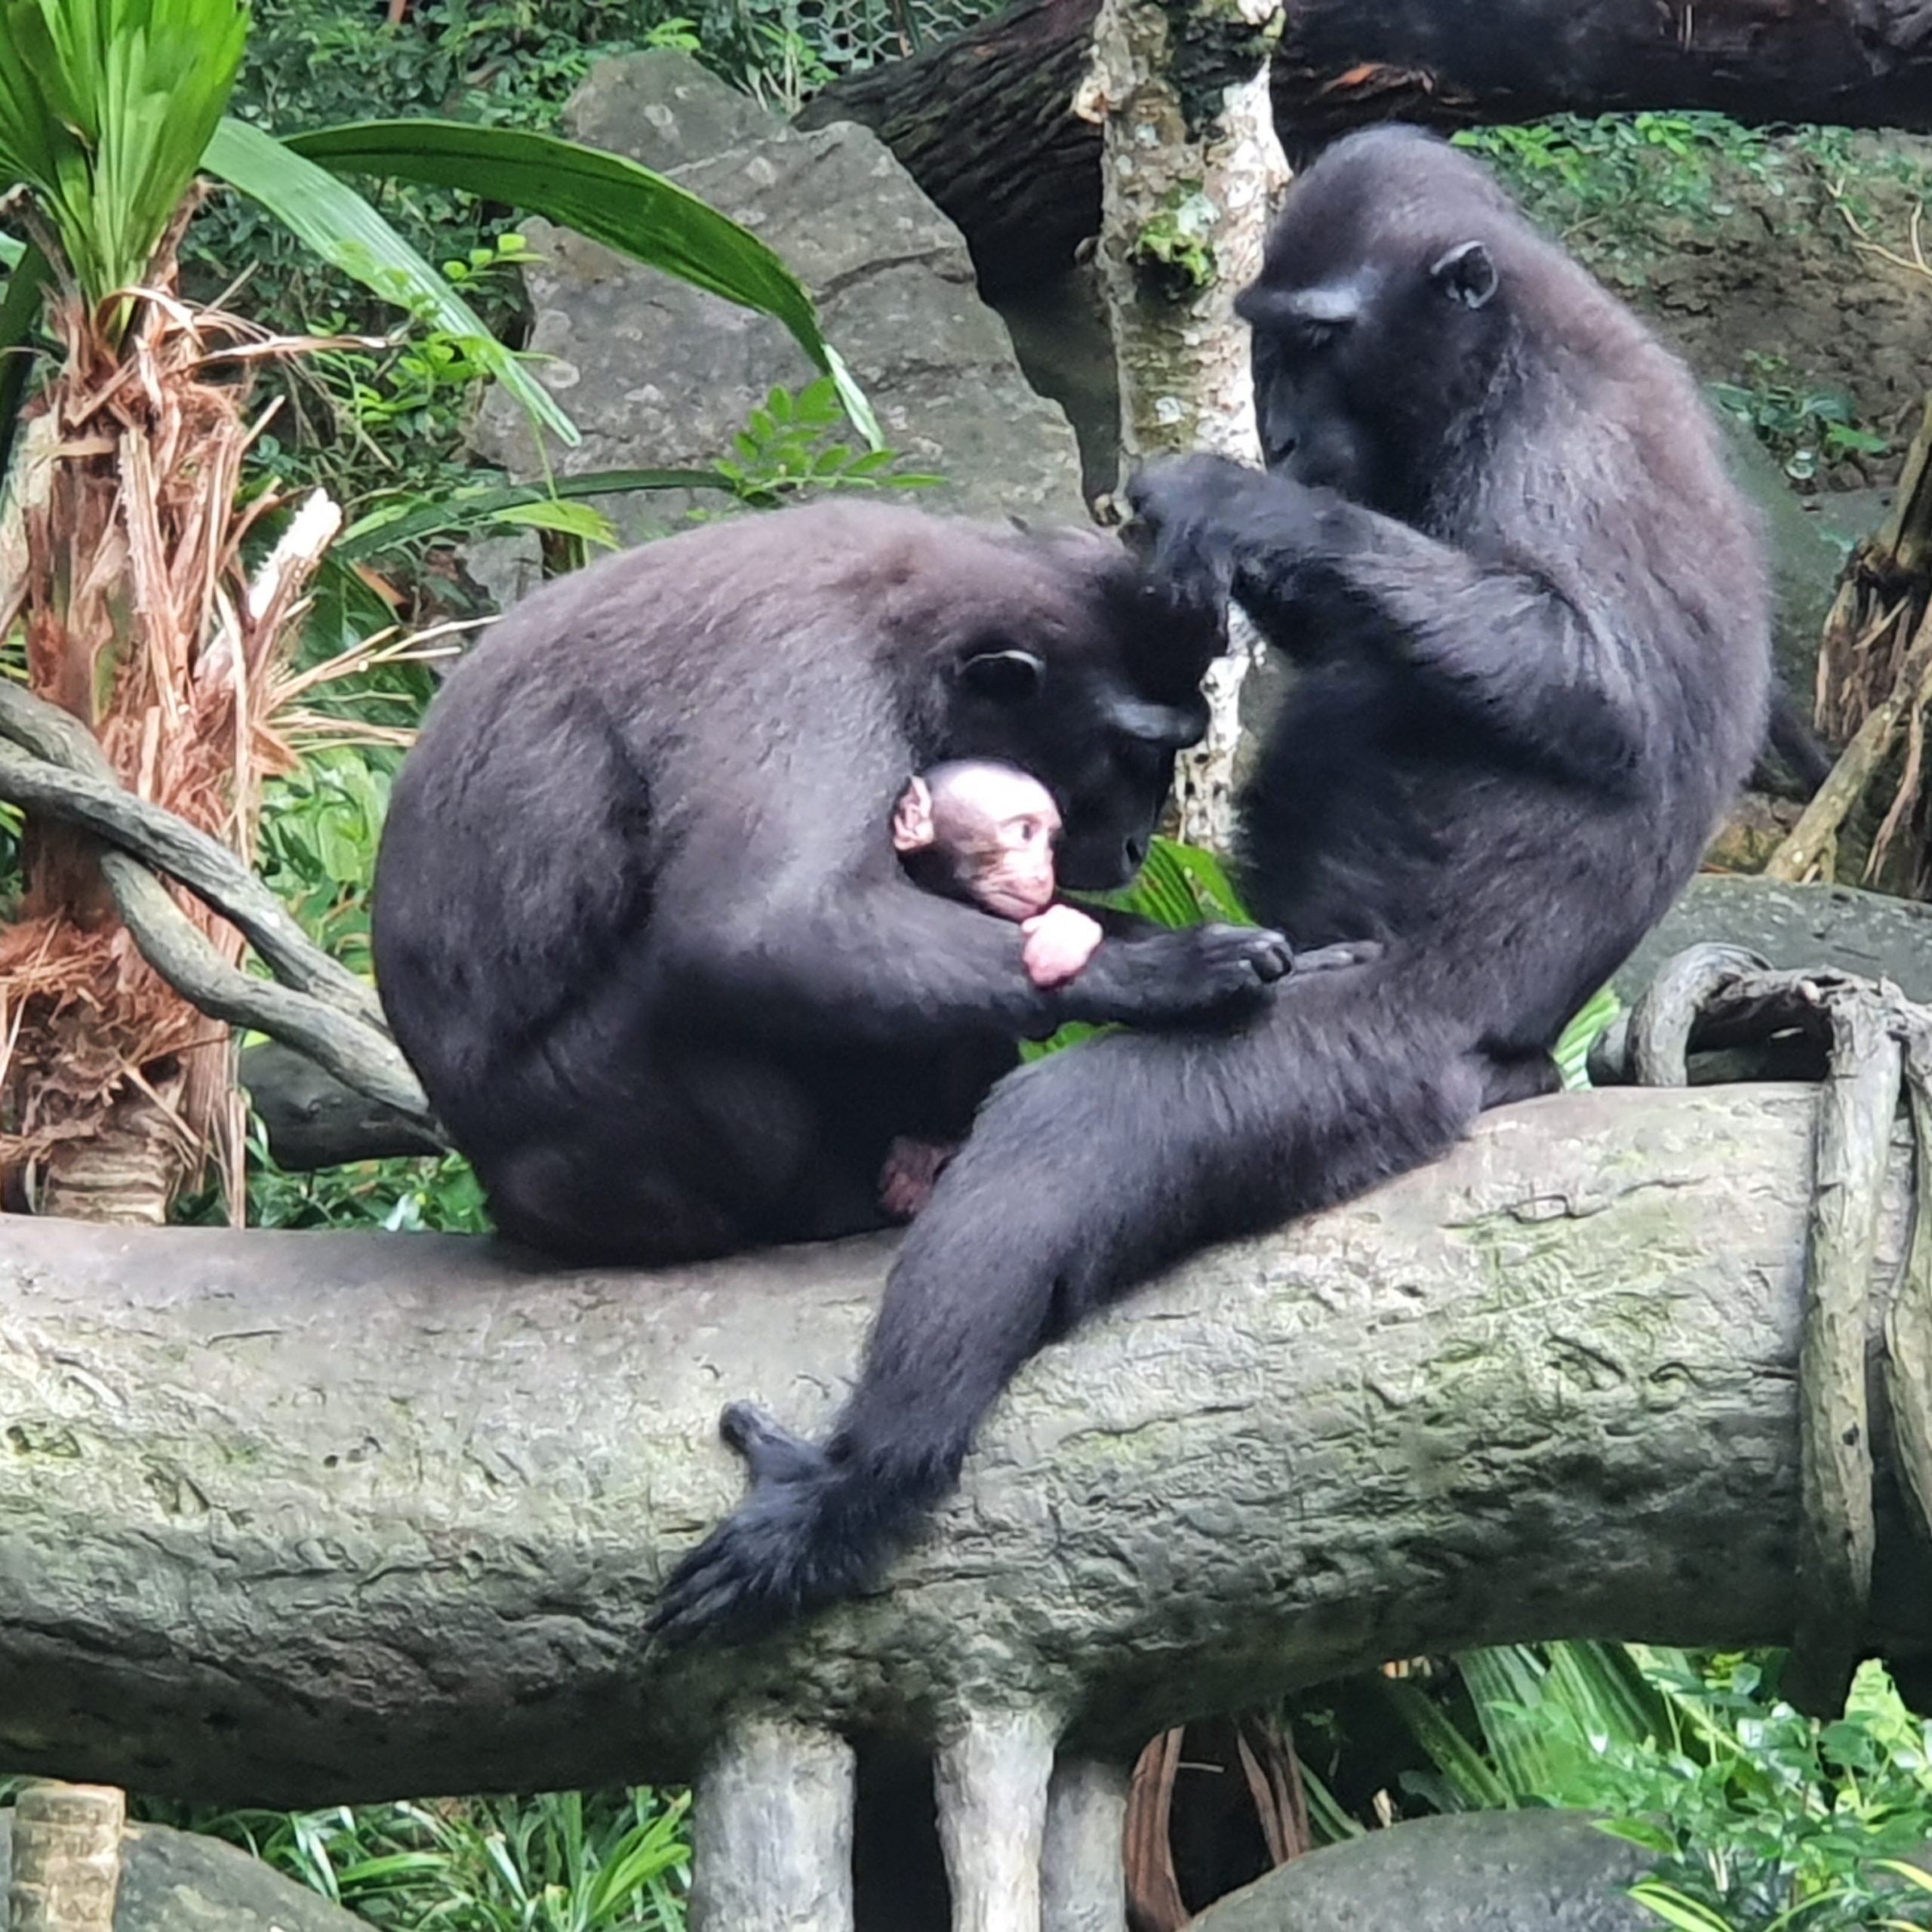 Celebes crested macaques are very social animals. Joyo can often be spotted snuggling up to his mother Dewi and aunt Ria during grooming sessions. Photo courtesy: Wildlife Reserves Singapore